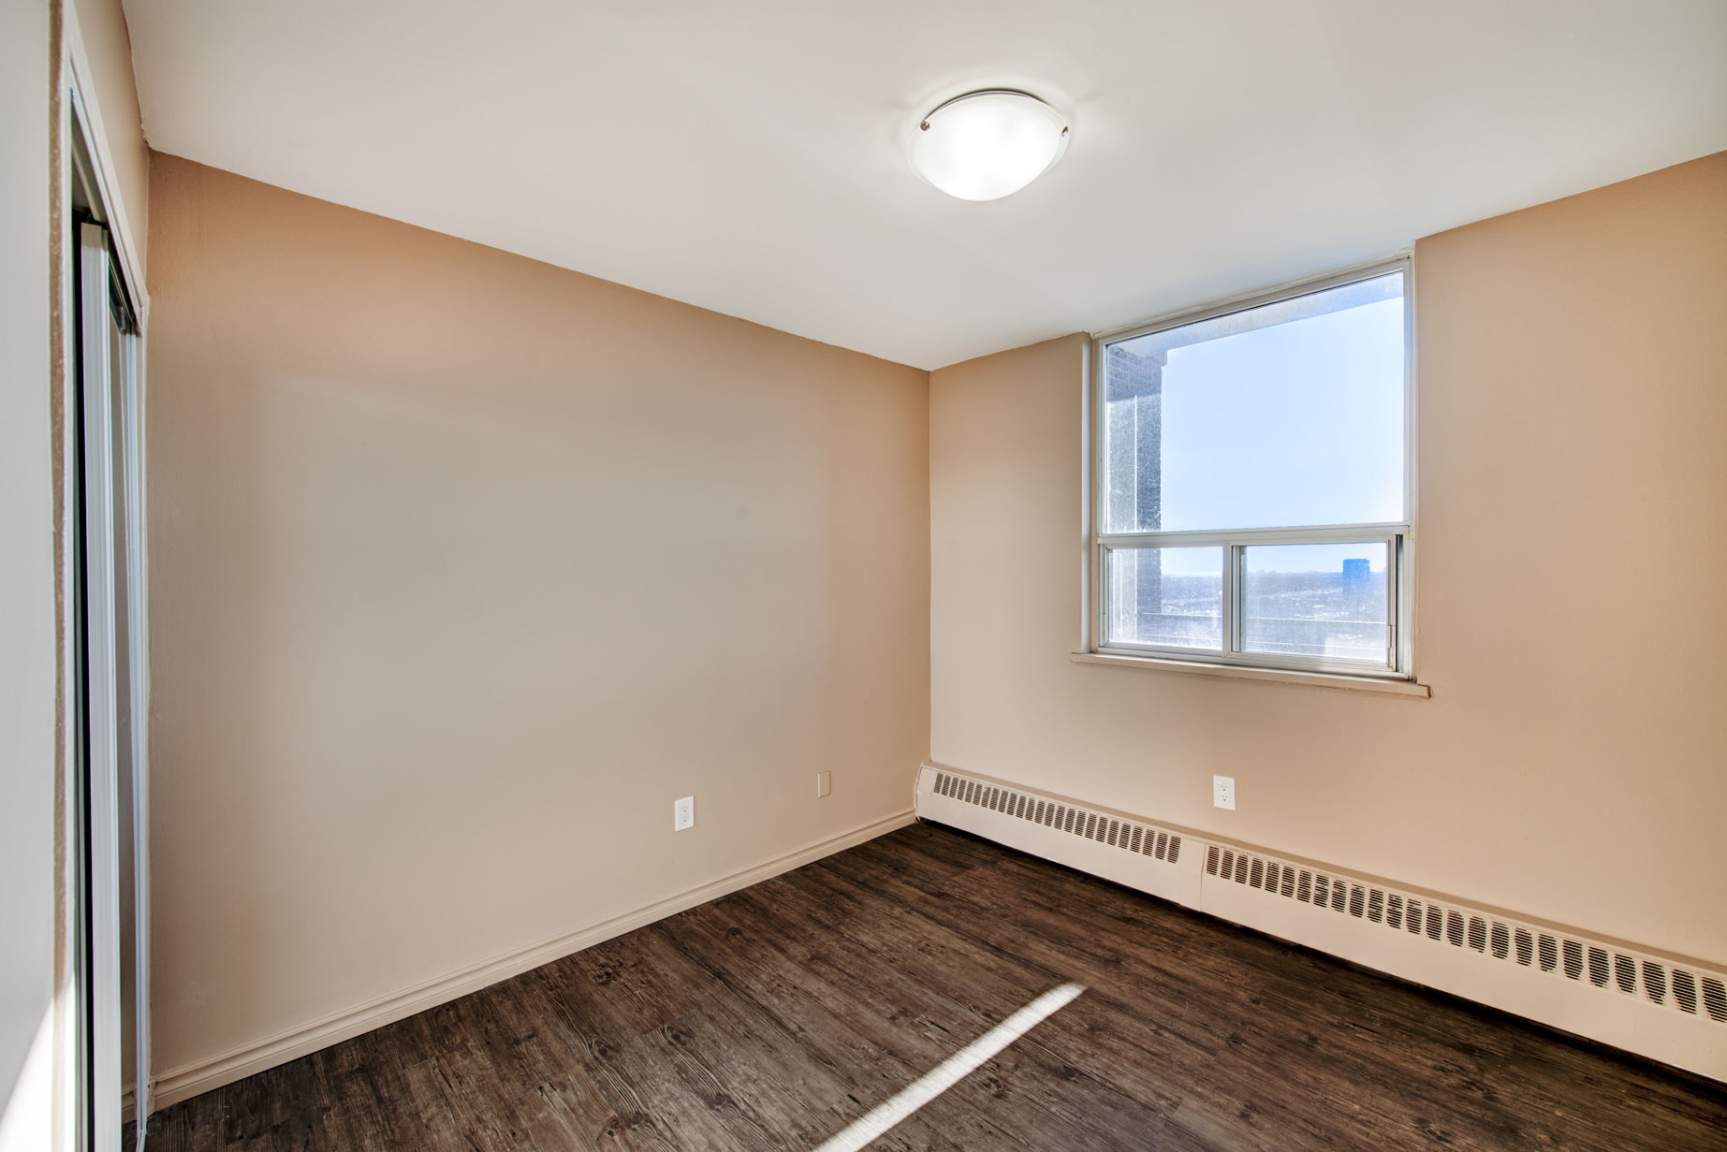 1 bedroom Apartments for rent in North-York at Hunters Lodge - Photo 25 - RentersPages – L400651